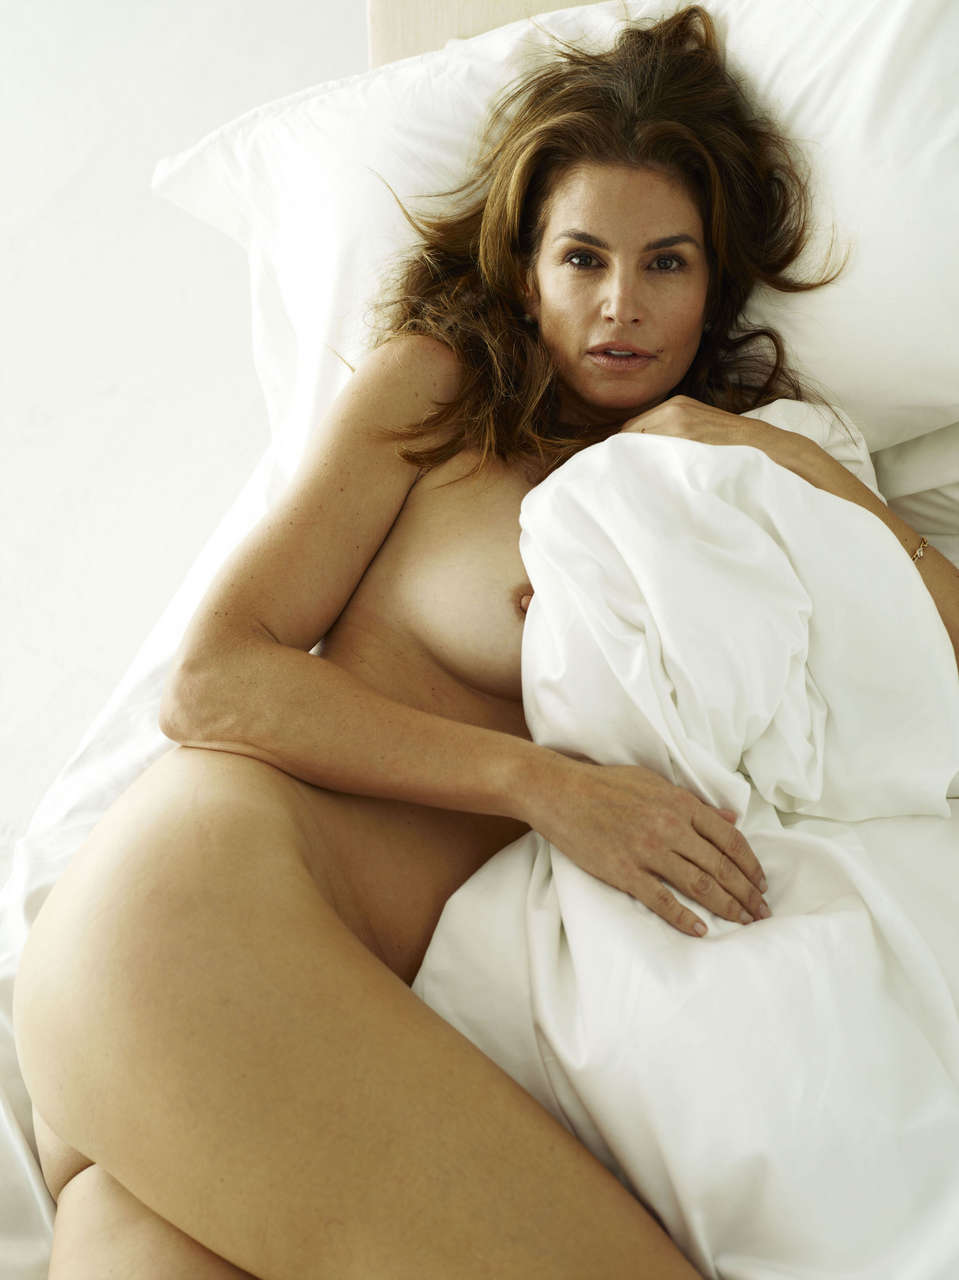 Cindy Crawford Unedited Hq Image NSFW